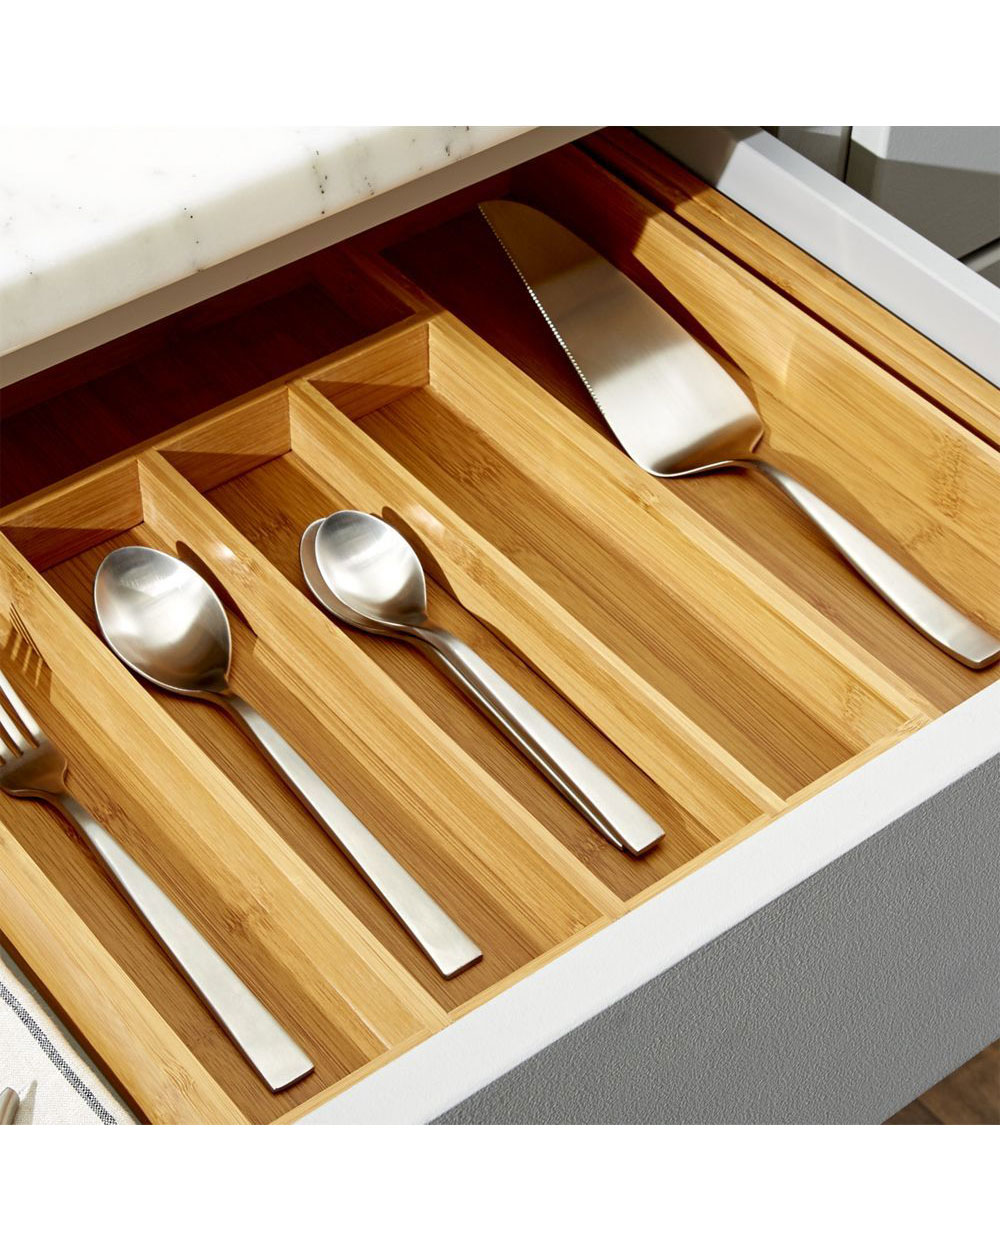 Crate and Barrel Expandable Bamboo Flatware Tray